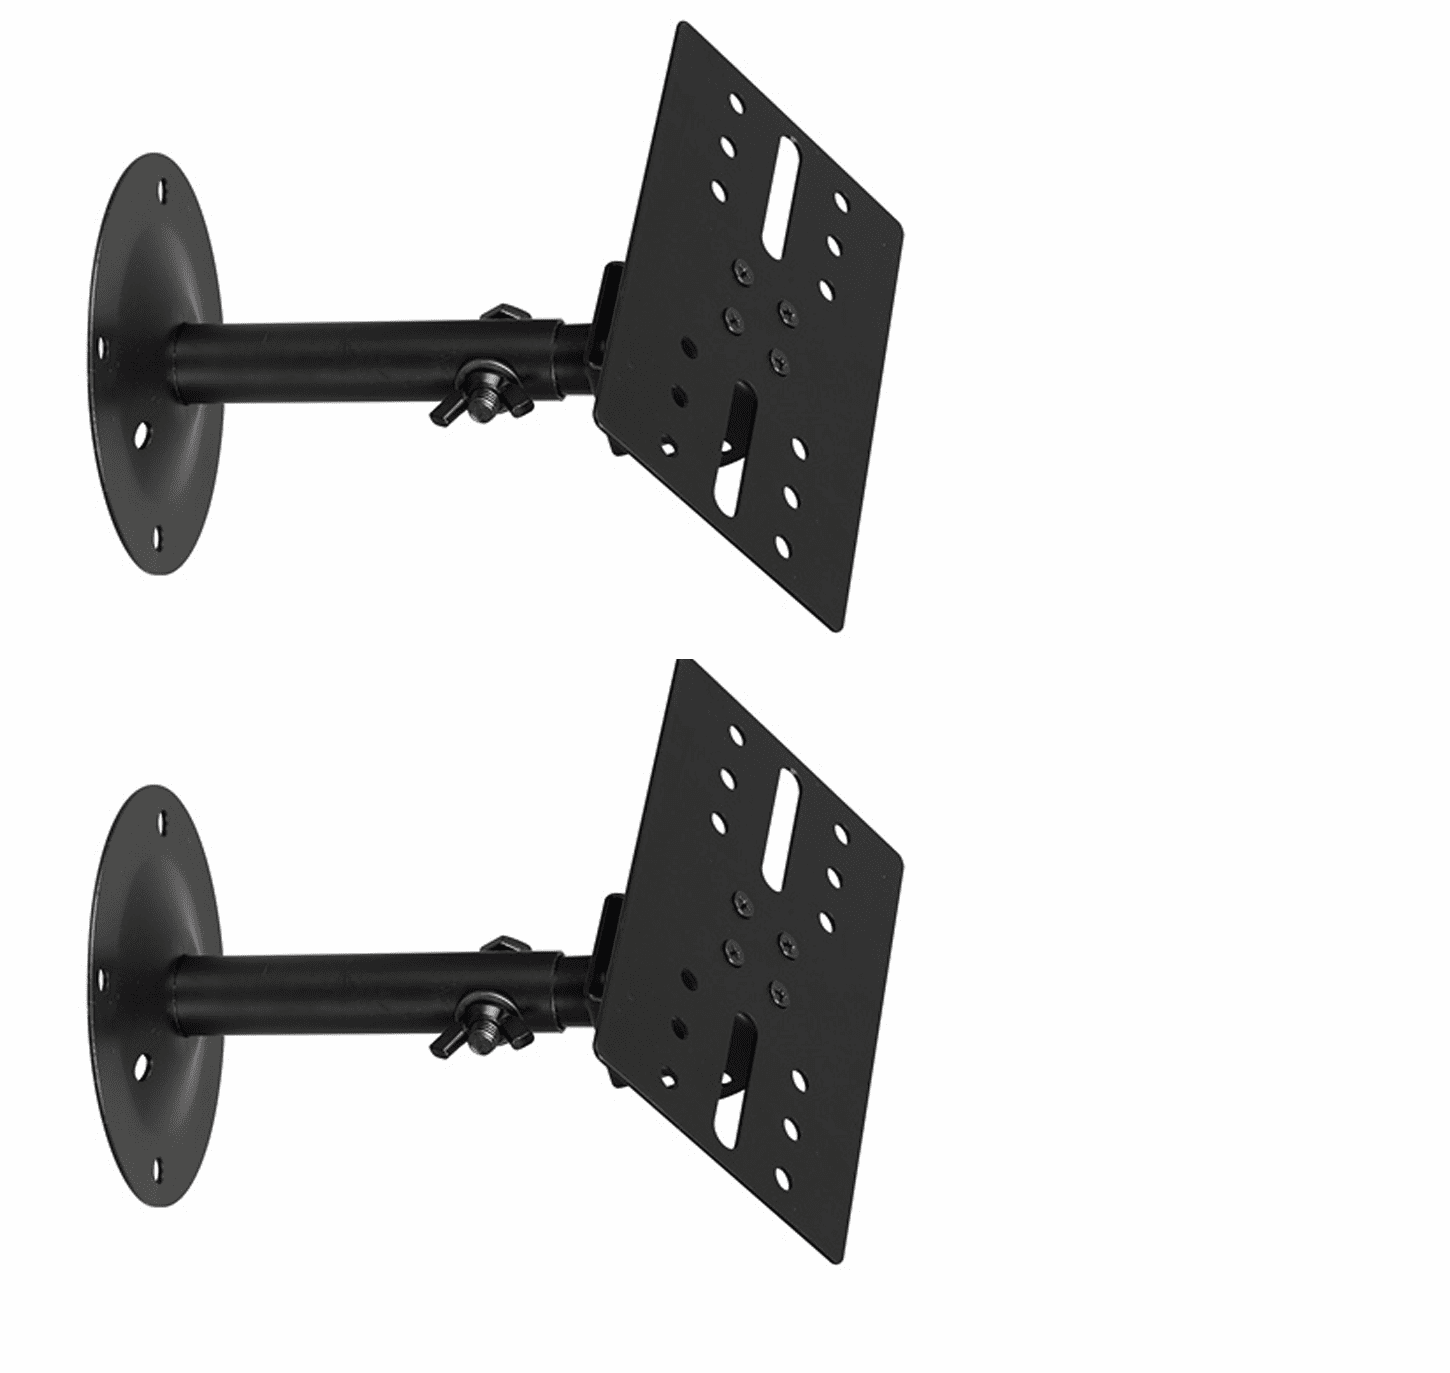 IDOLpro SPS-507 Angle Adjustable Wall Bracket Speaker Stand (Pair)